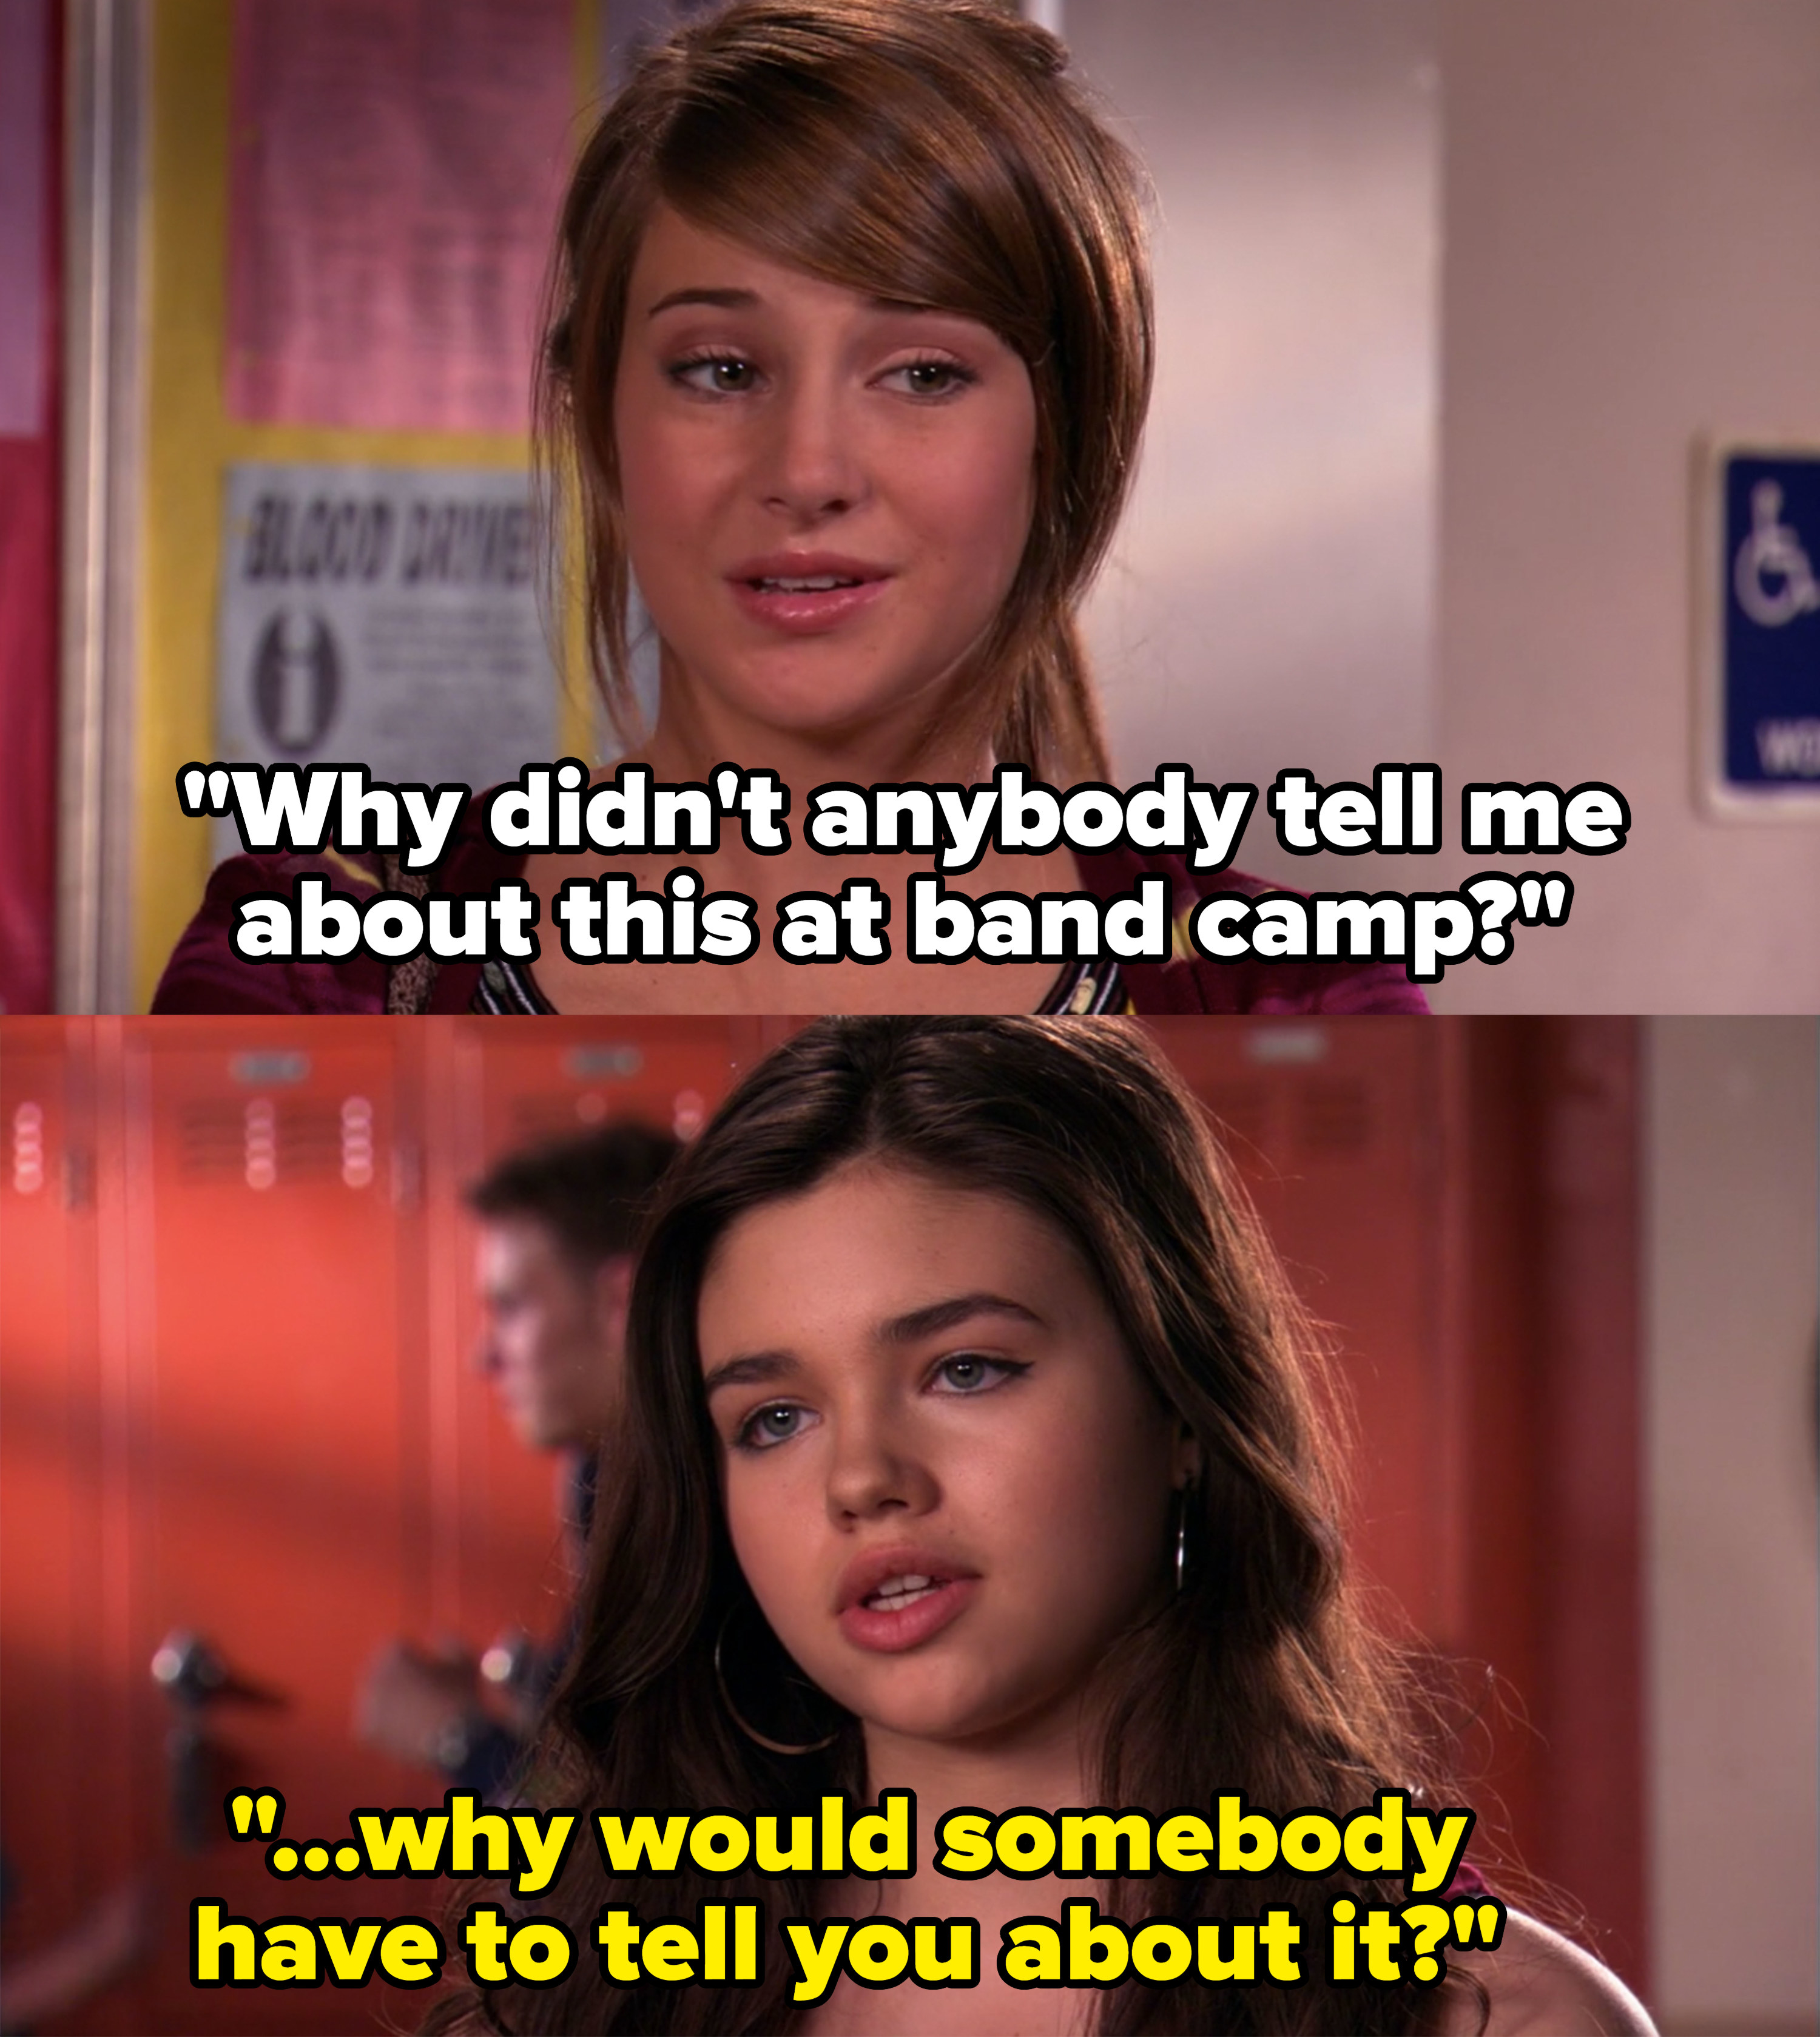 Amy asks why nobody ever told her about masturbation at band camp and Ashley asks why someone would even need to tell her about it